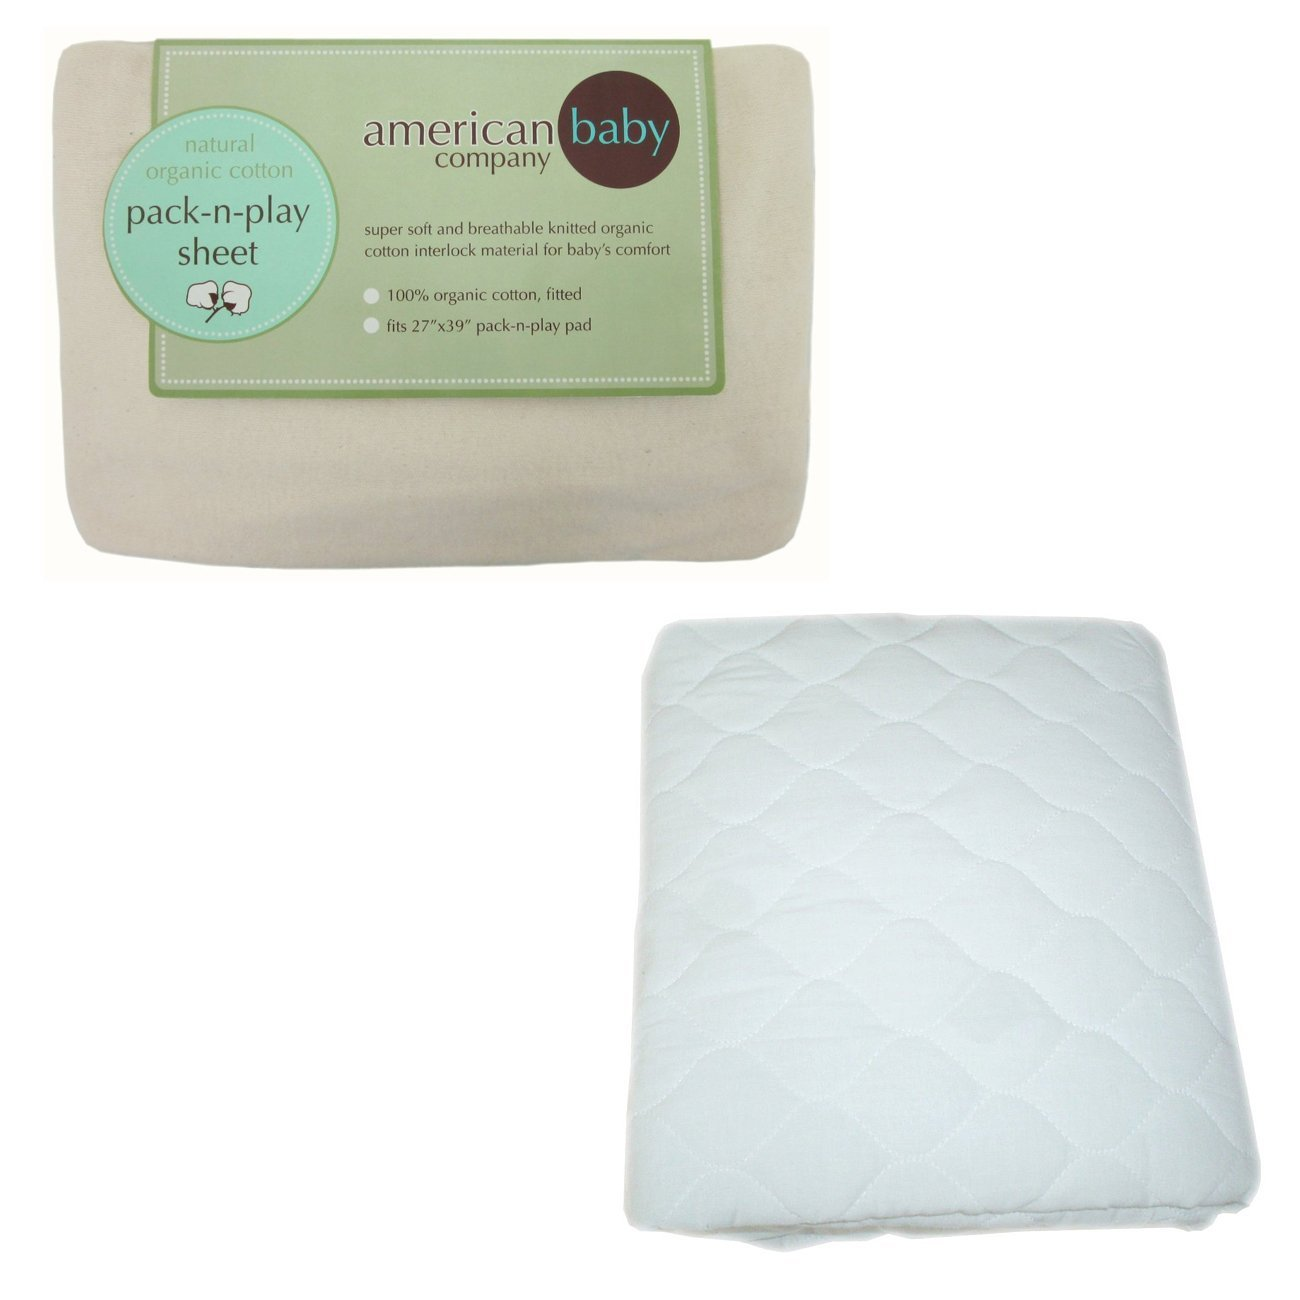 American Baby Company Organic Cotton Knitted Pack N Play Sheet With